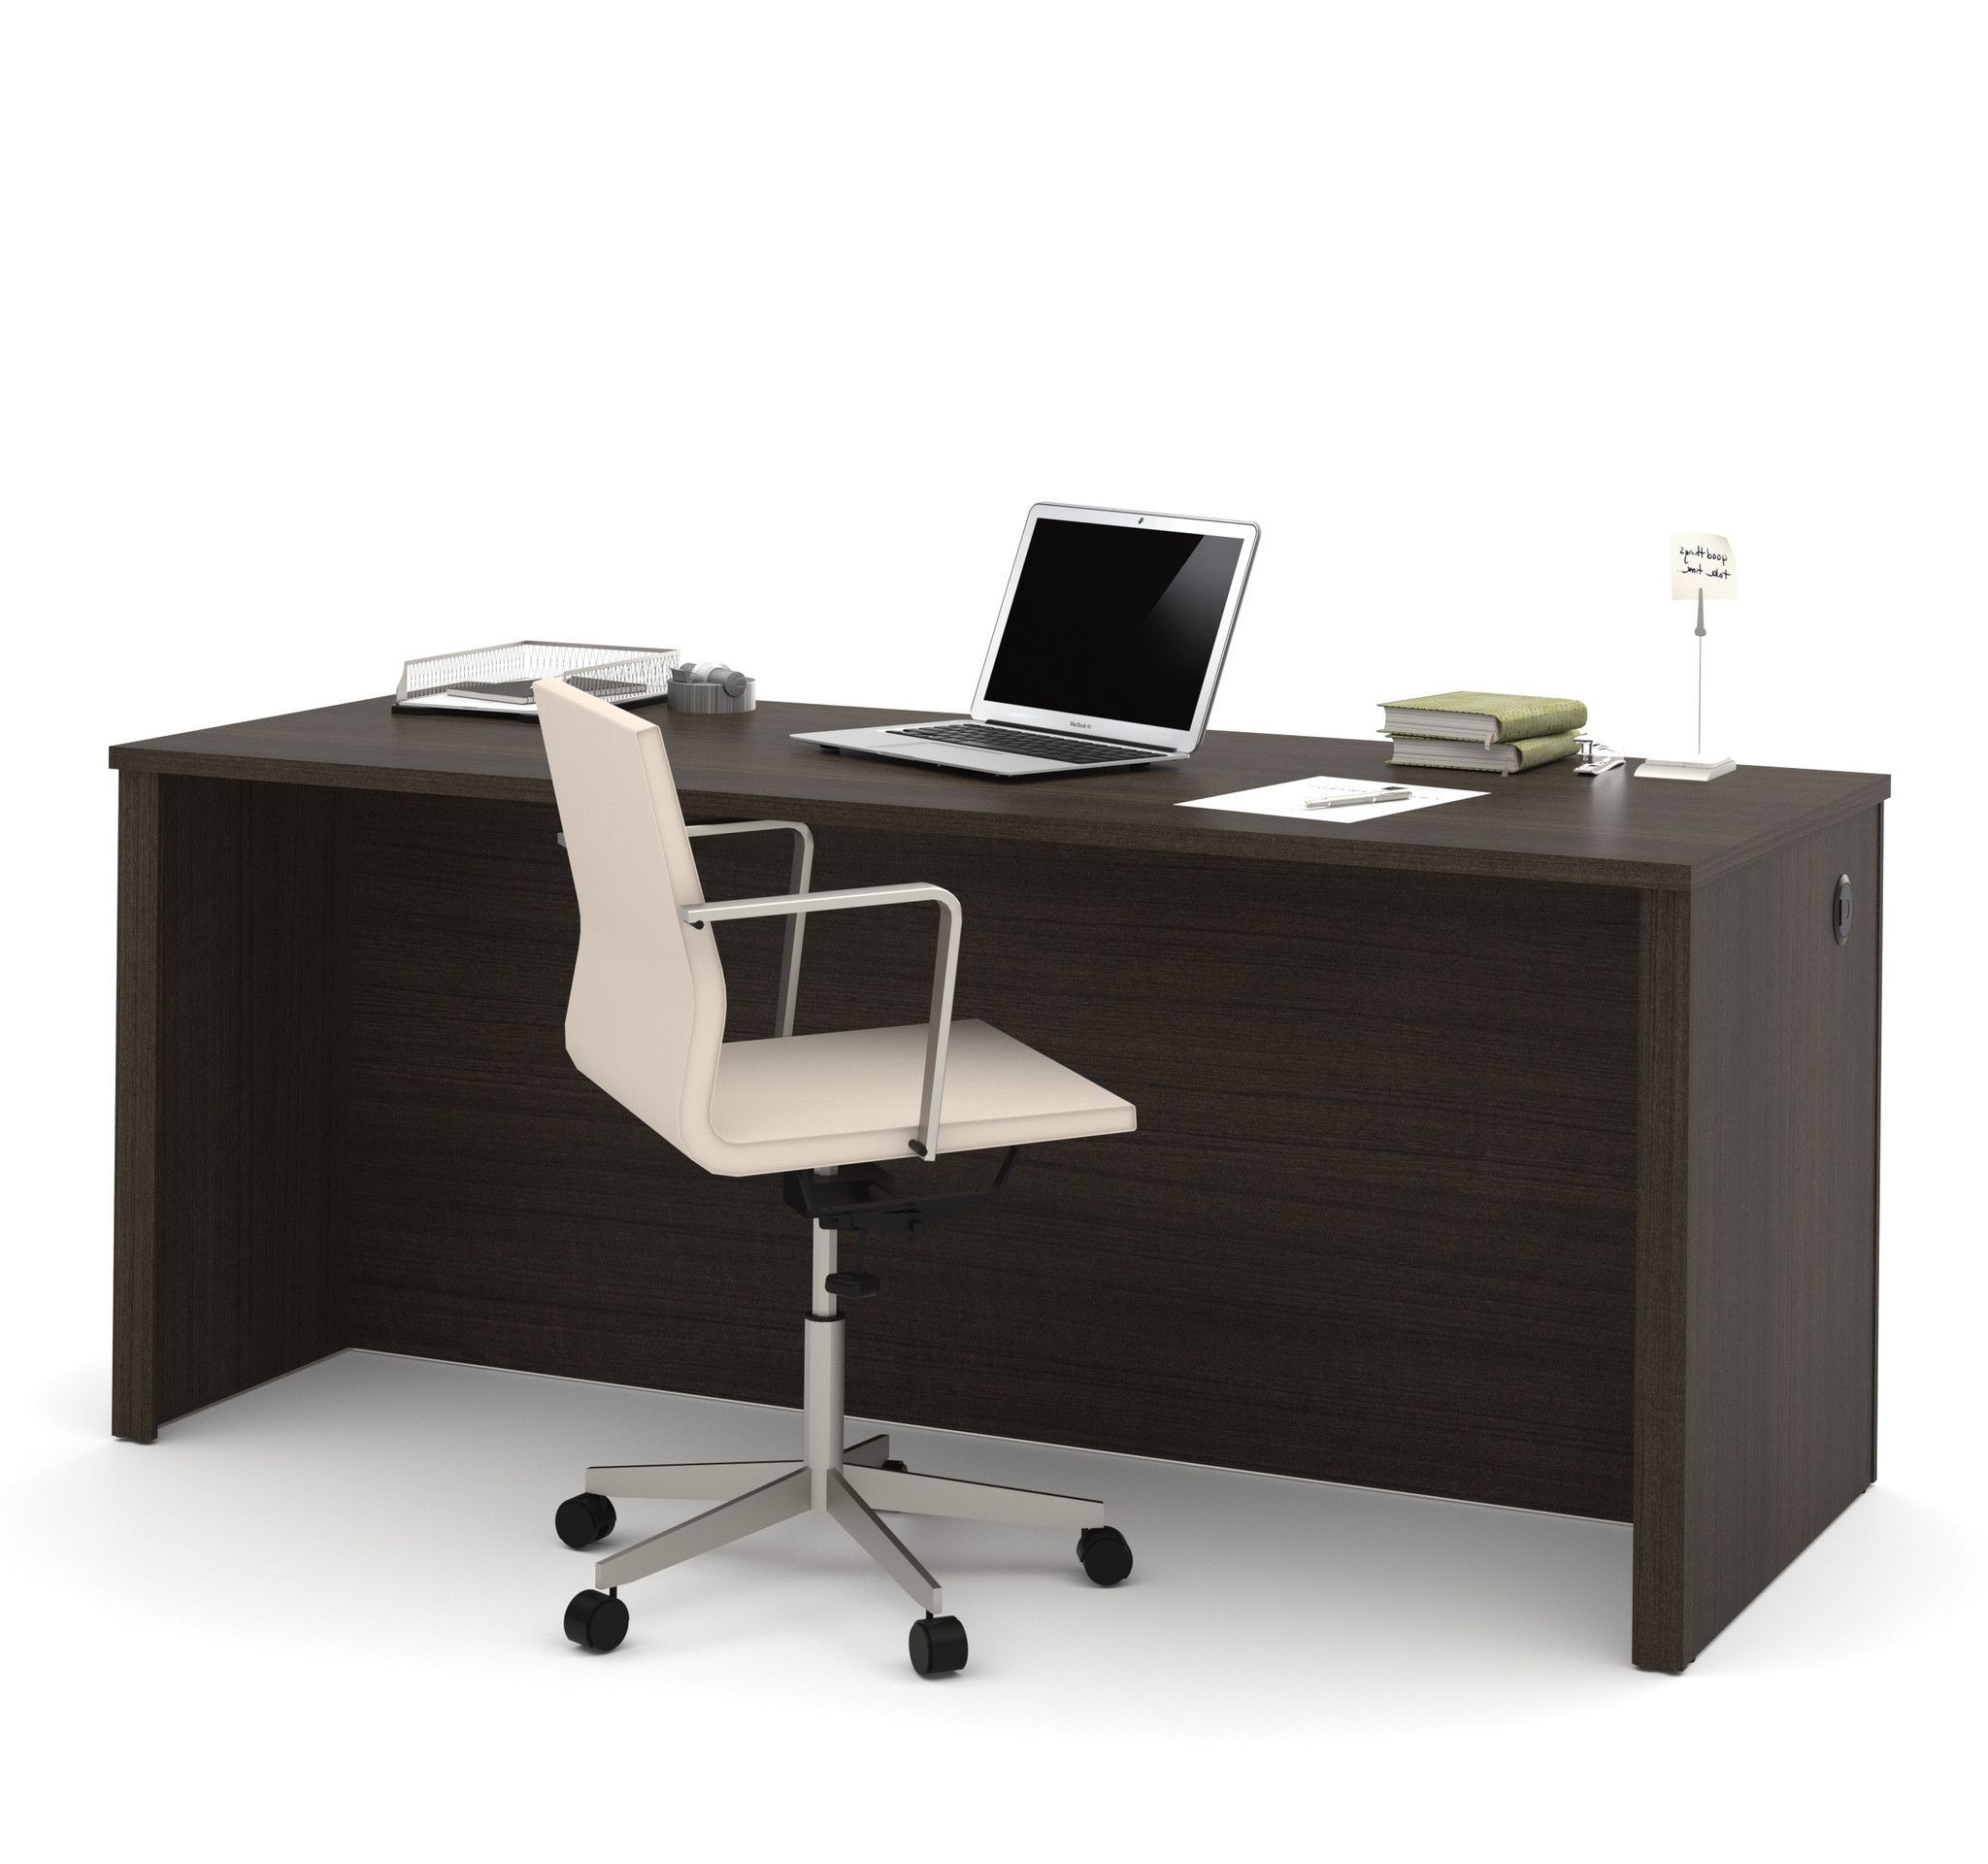 jesanet divine modern com executive latest desk